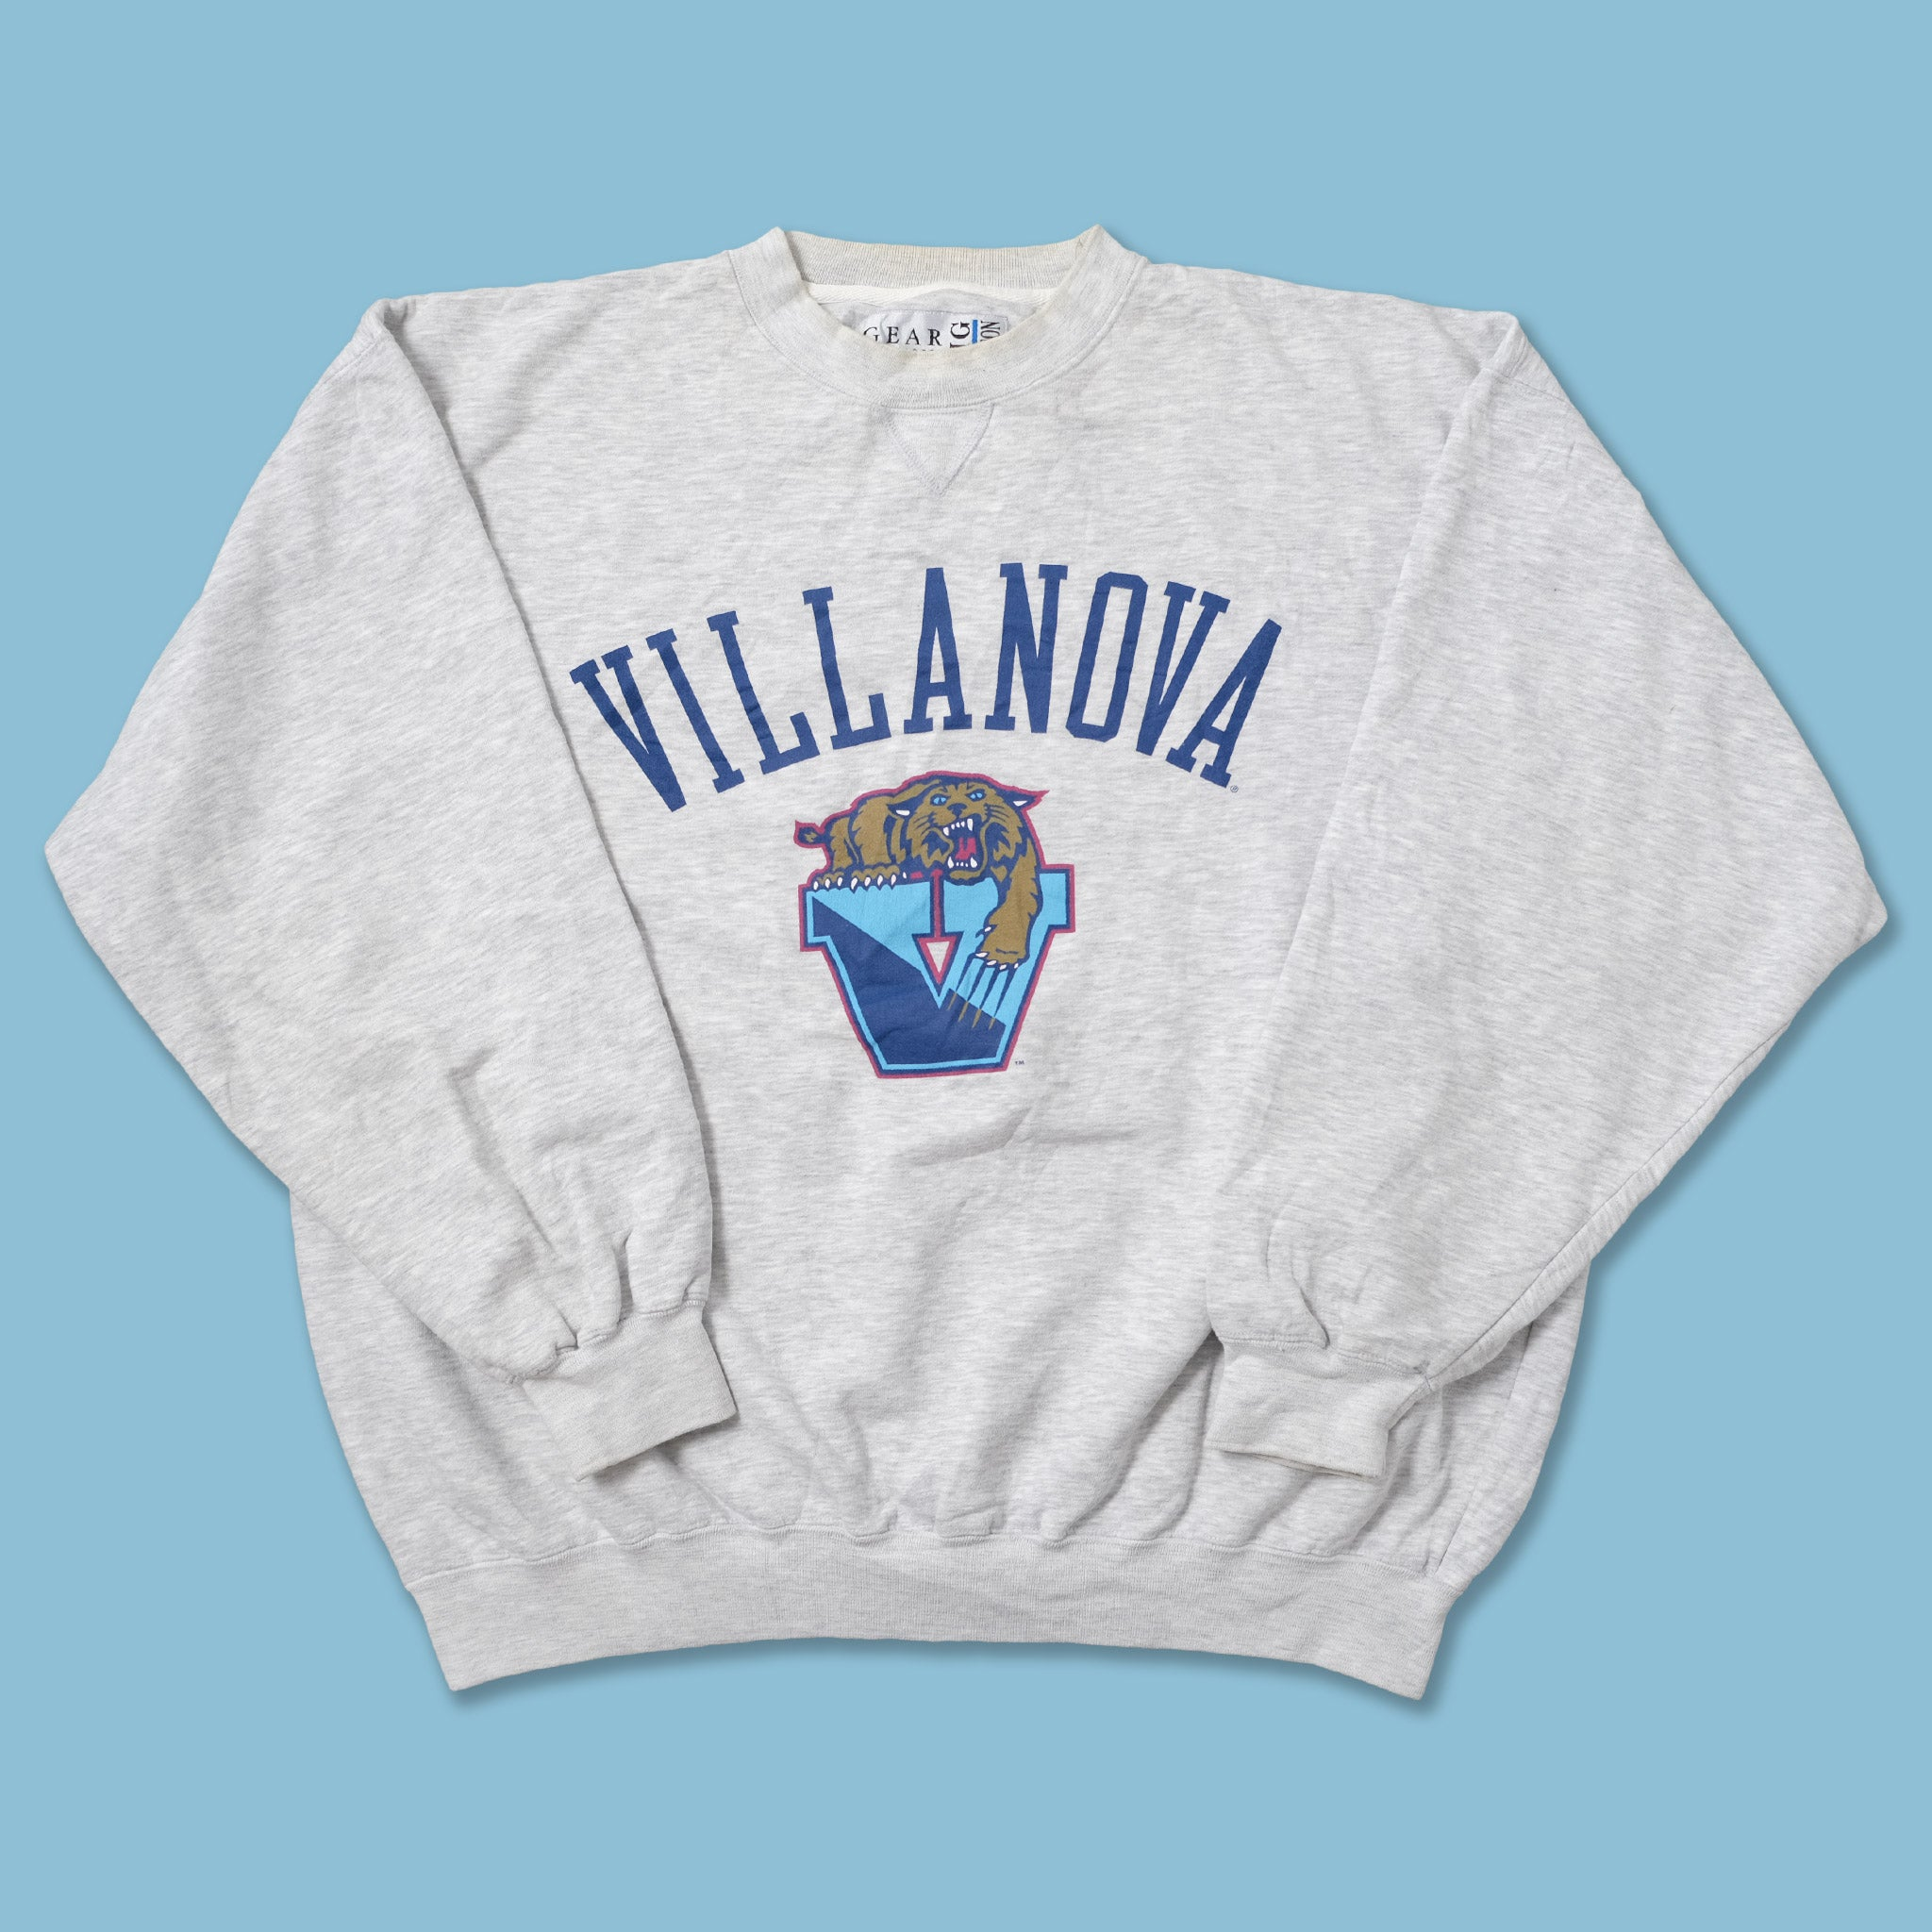 Vintage Villanova Sweater Large / XLarge